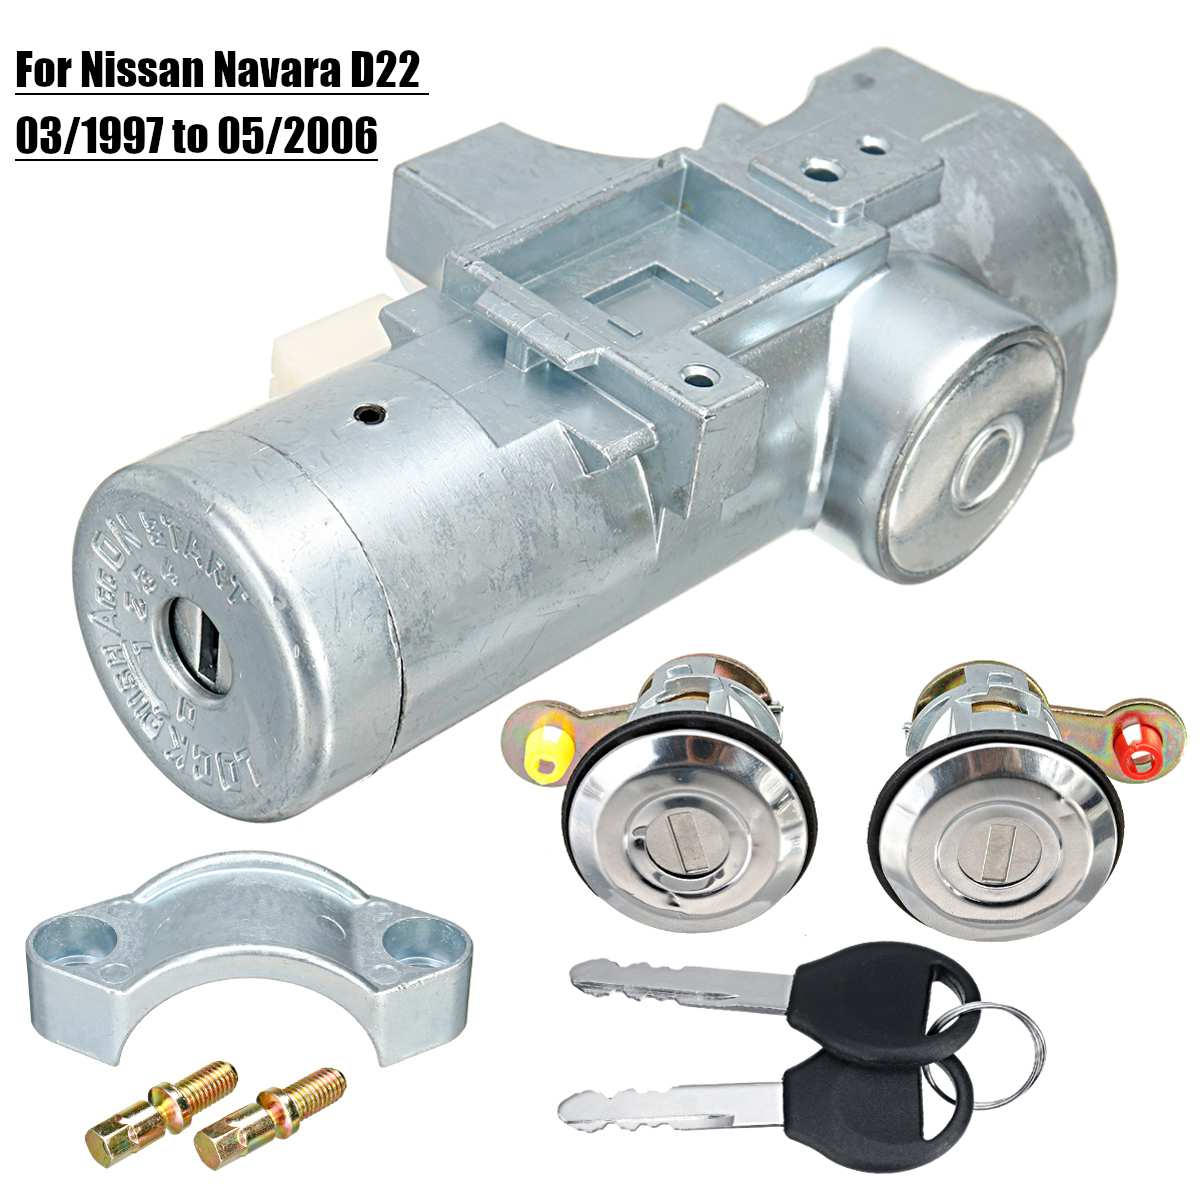 1 Set Door Lock Ignition Switch with 2 Keys for Nissan Navara D22 1997/2003/2005/2006|Starters| |  - title=